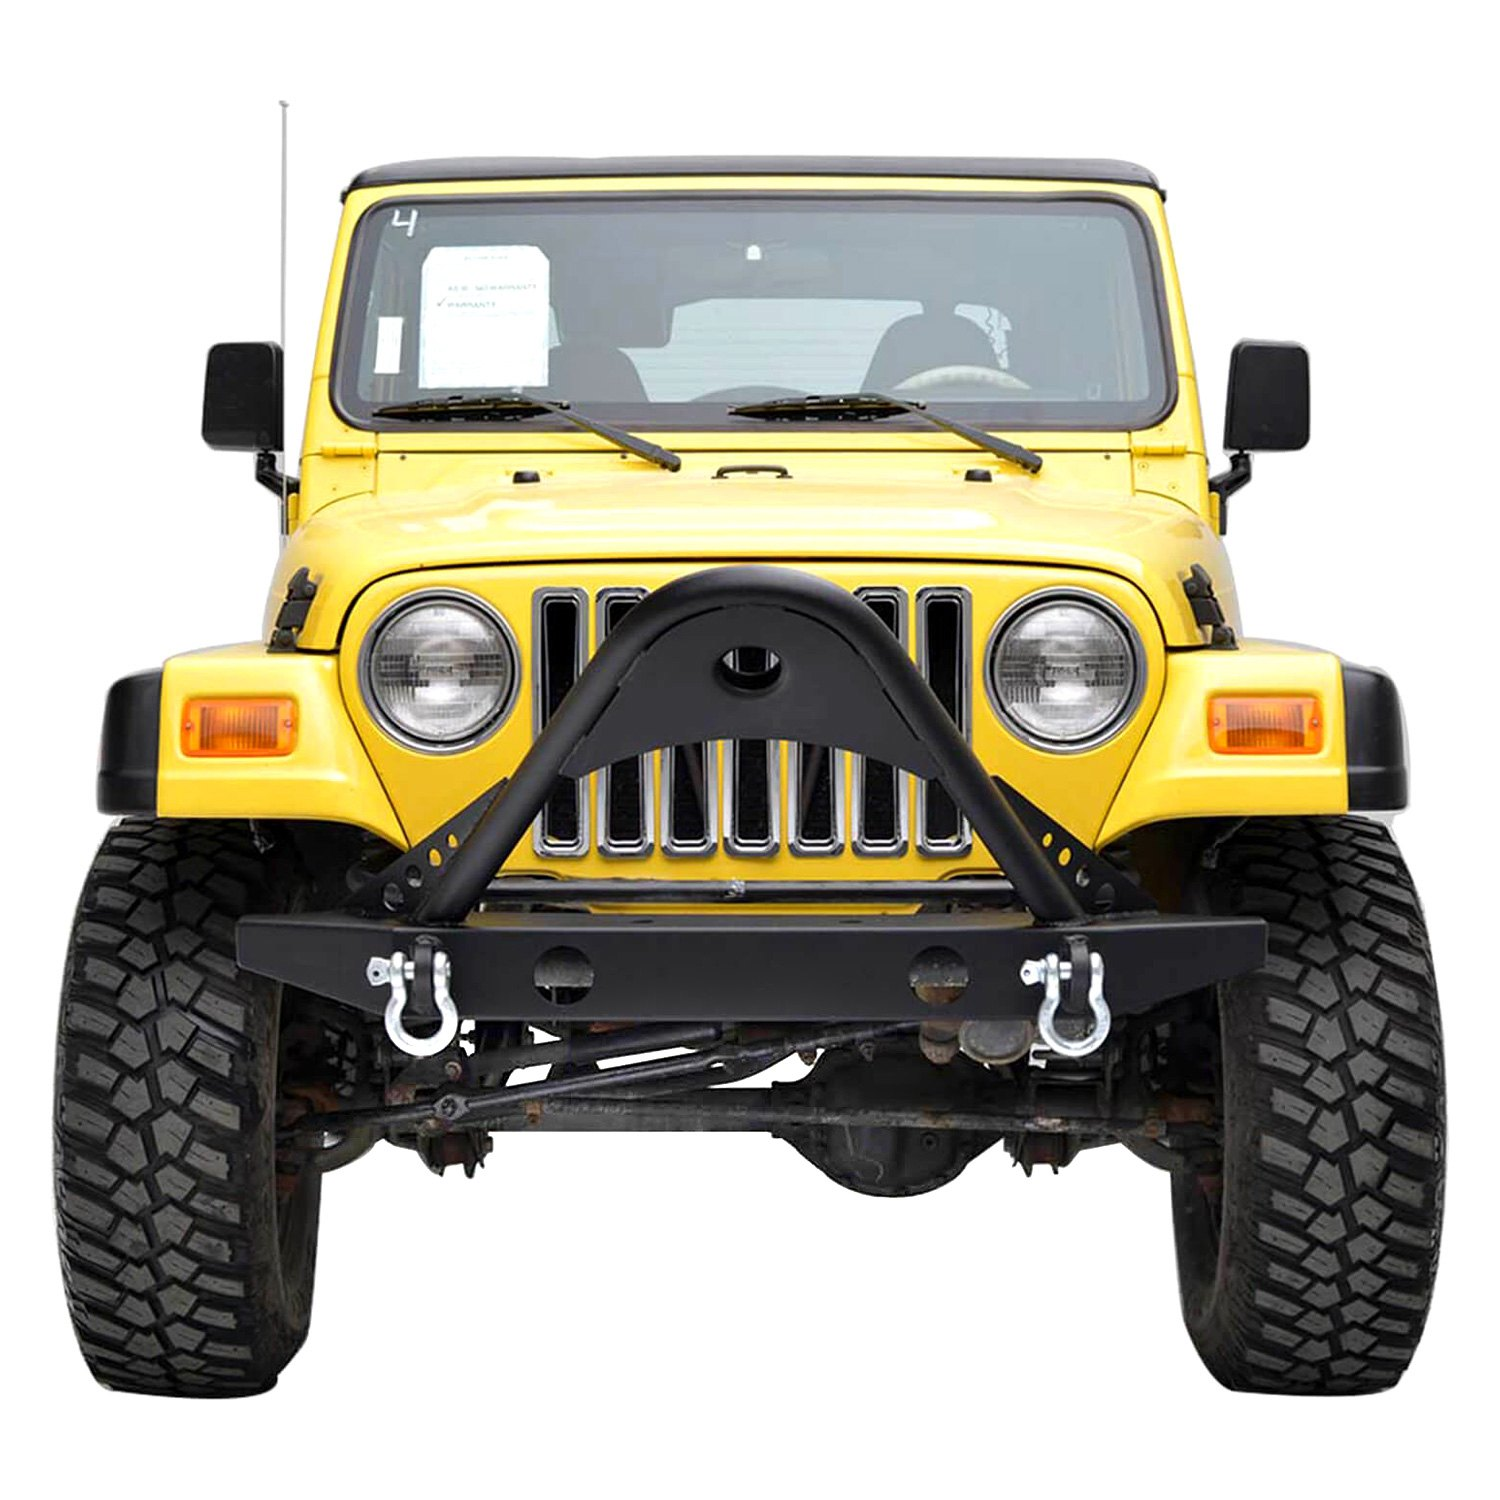 Service Manual [How To Take Bumper Off 1999 Jeep Wrangler